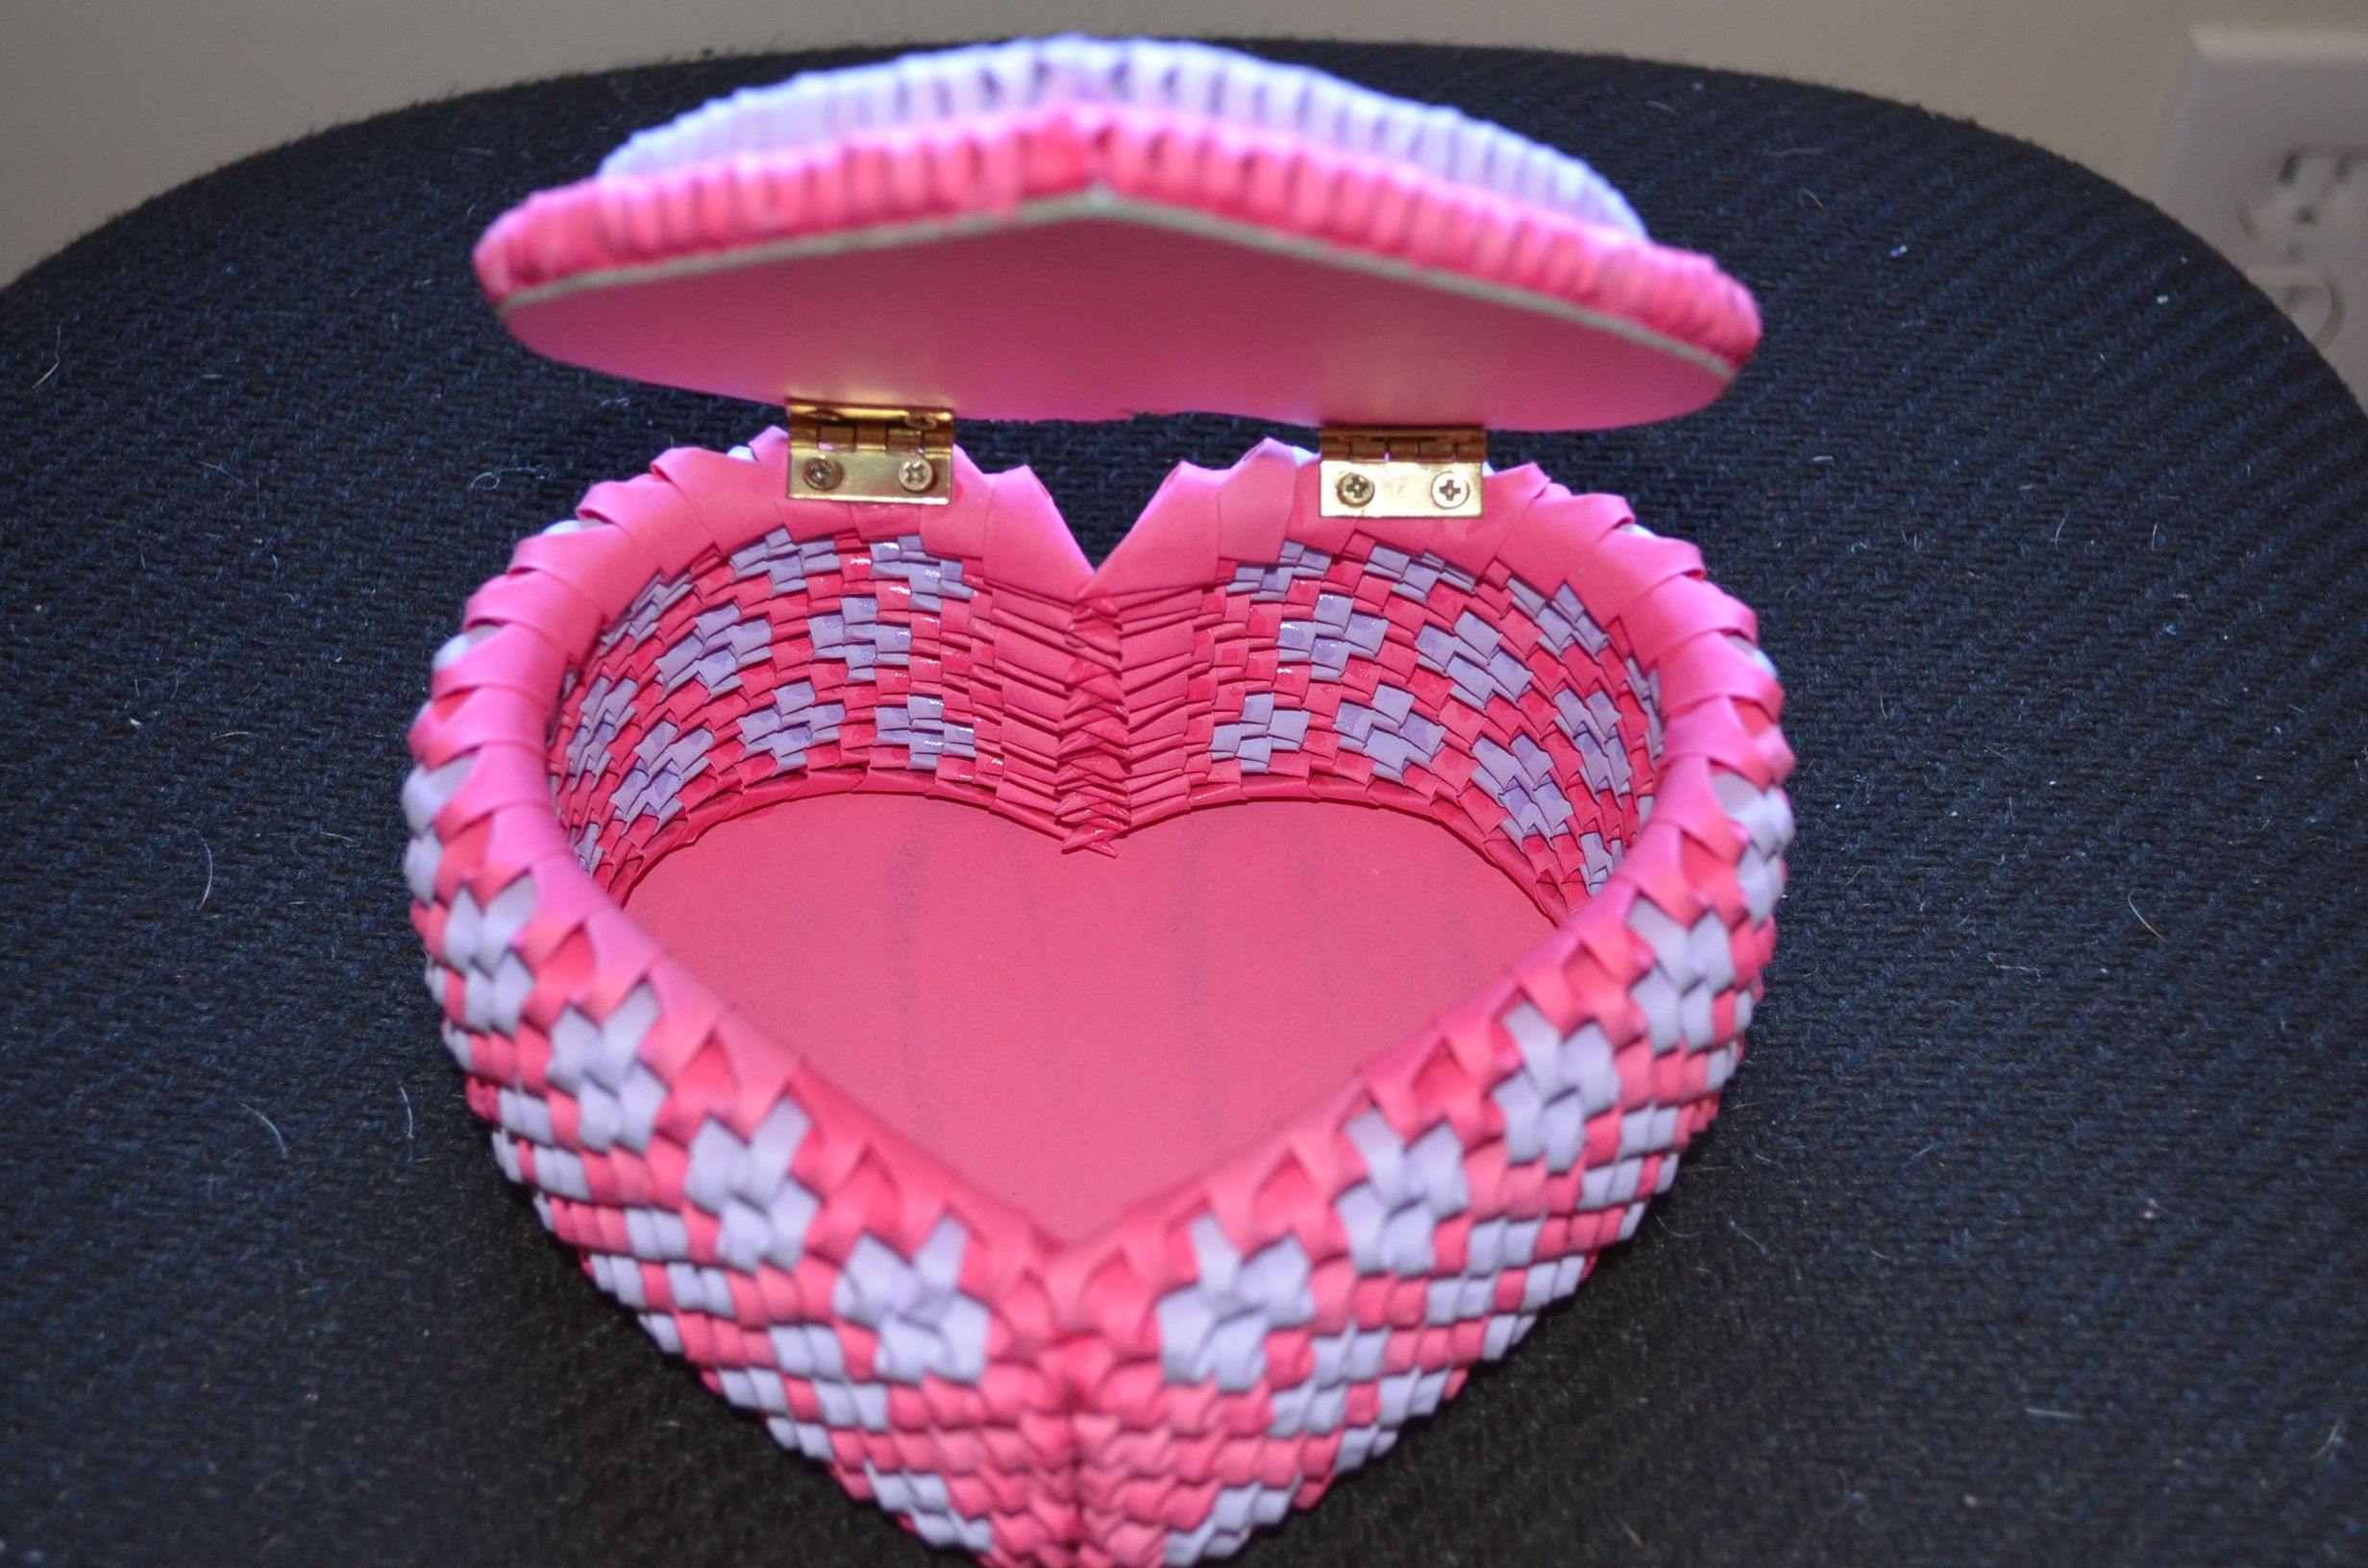 Heart Box | My 3d origami | Pinterest | Origami and Box - photo#3